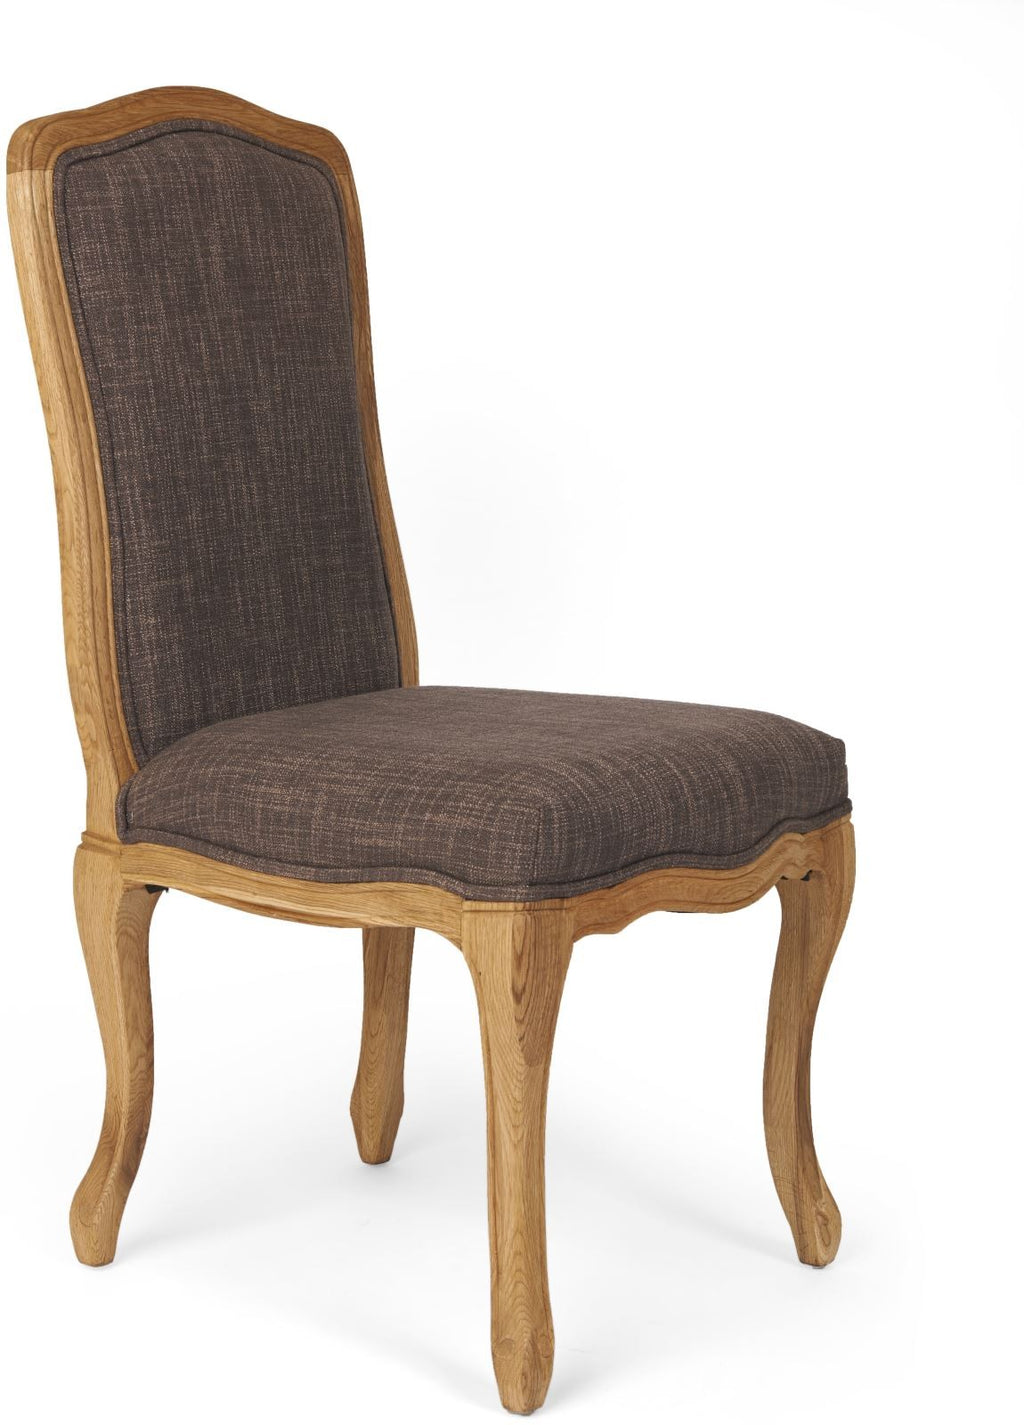 Tuscany Dining Chair -Upholstered